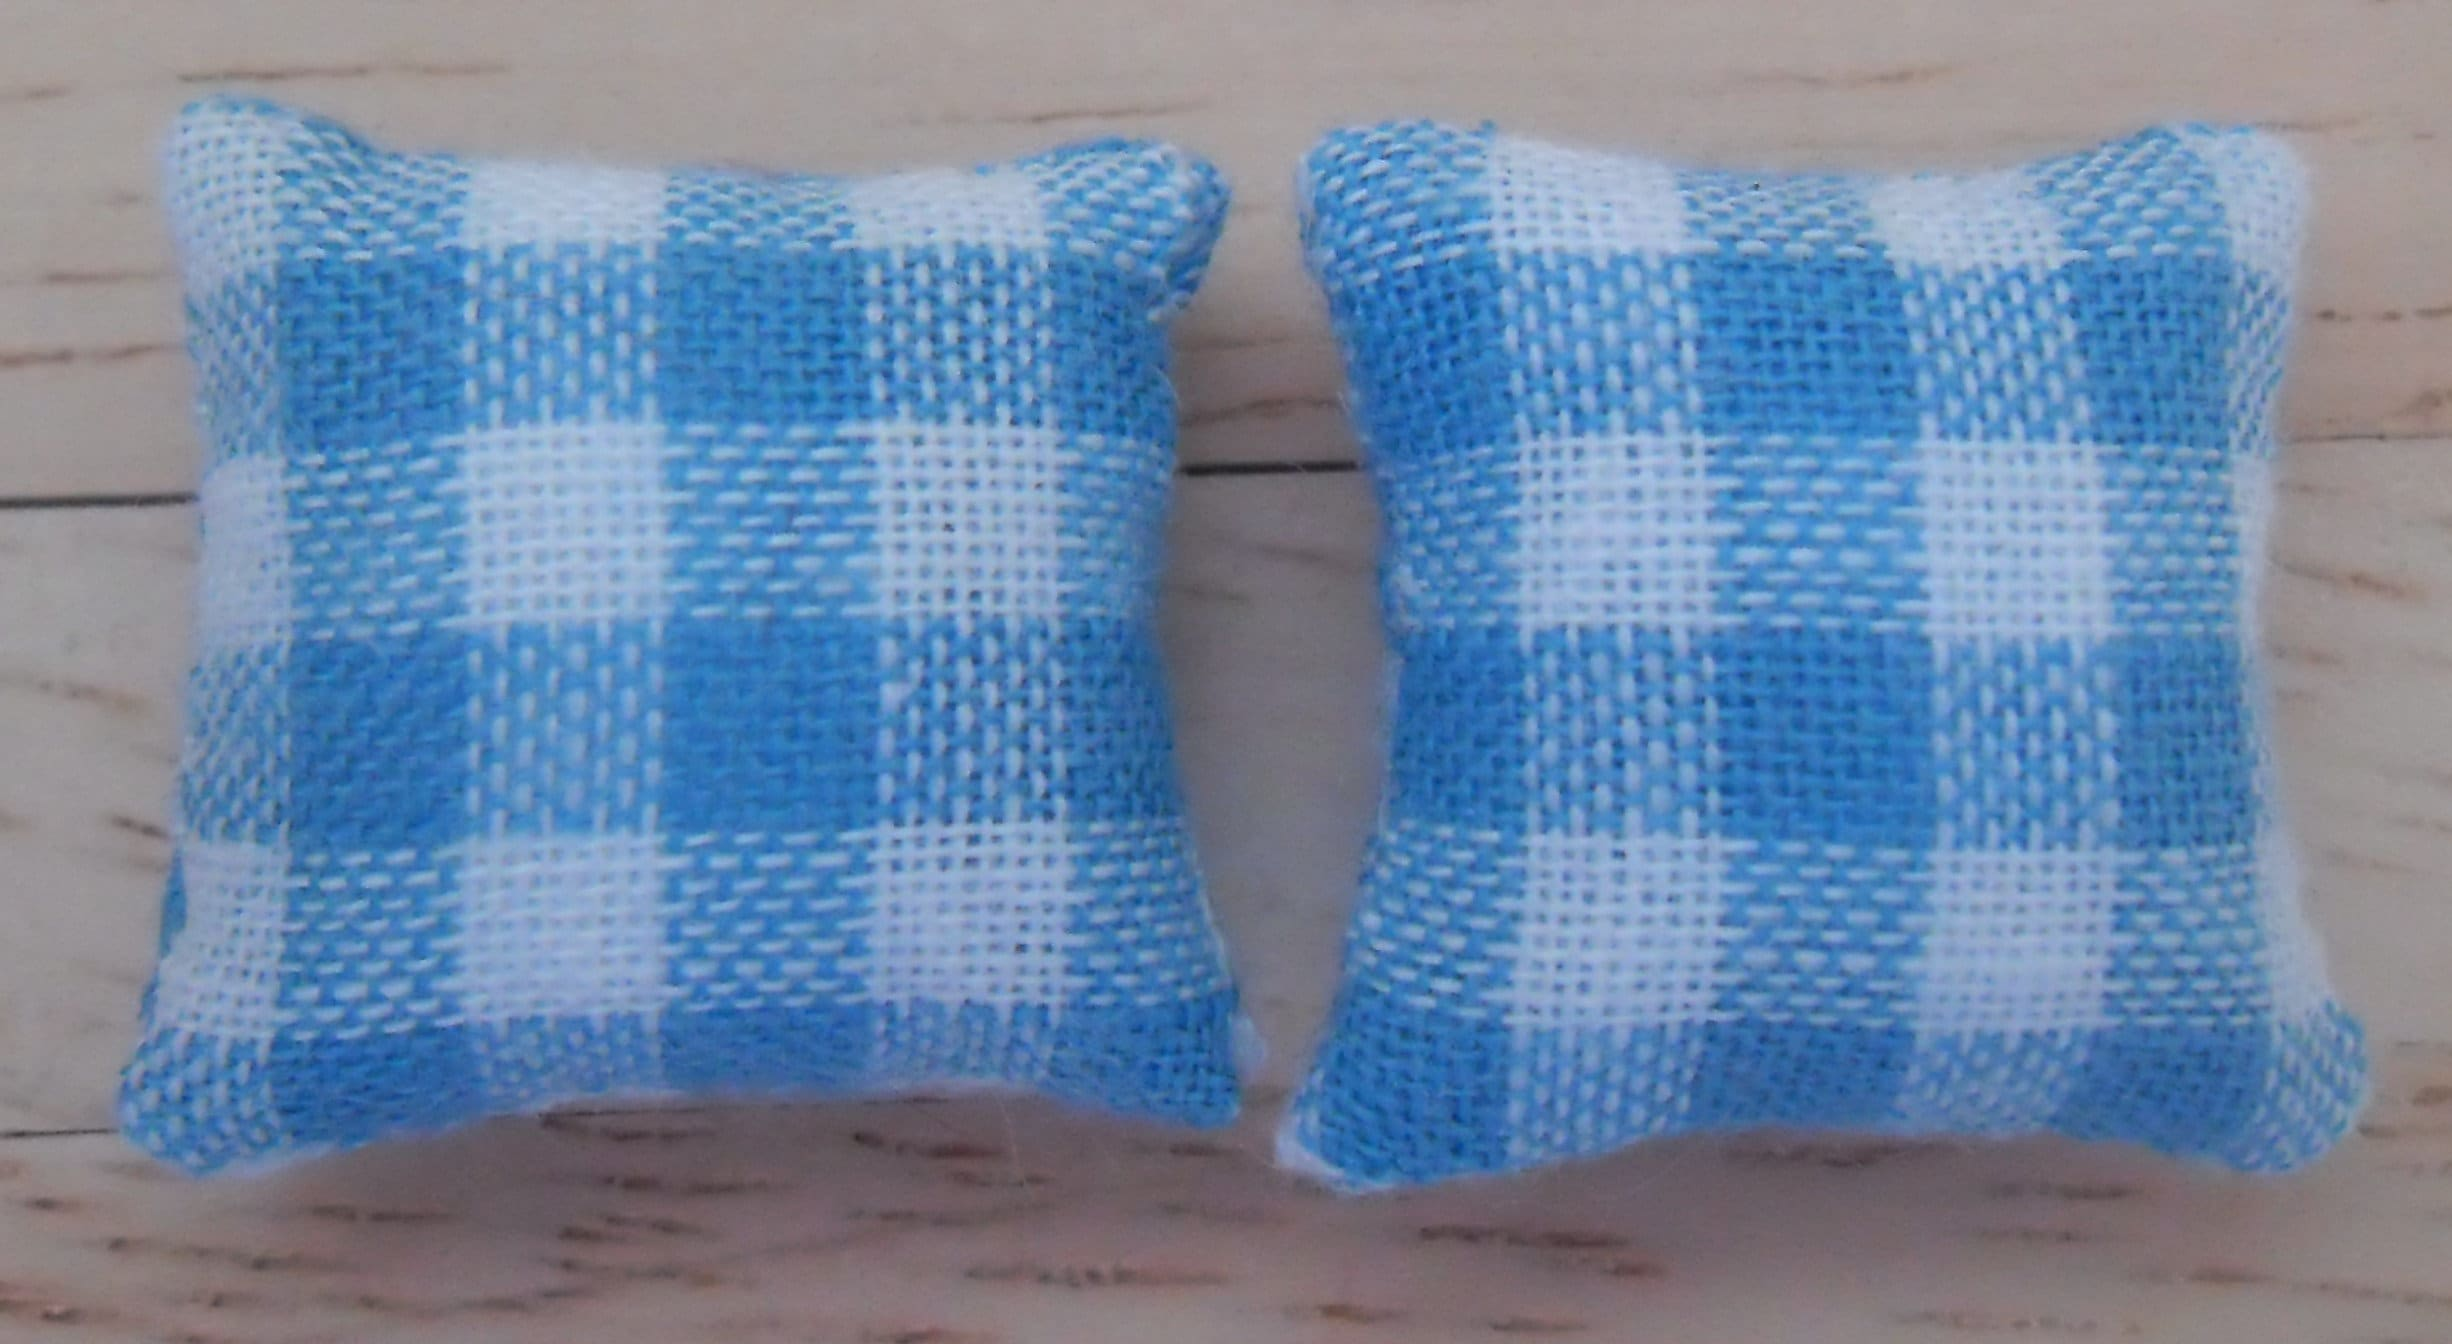 1//24th Scale Dolls House Cushions Blue /& White Check Pattern